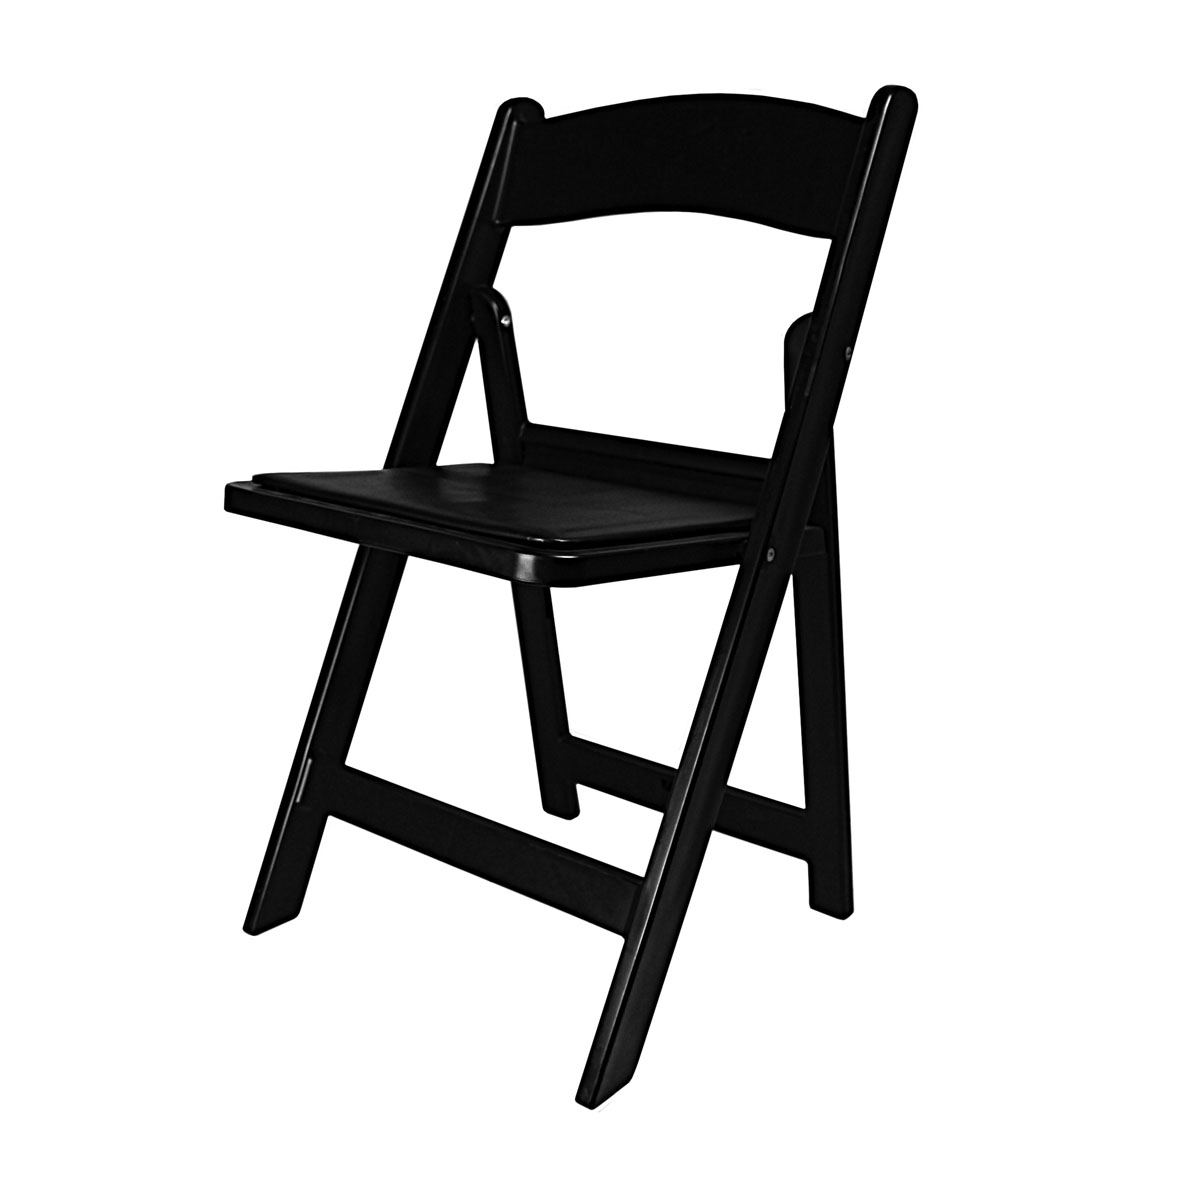 Chair Black Garden Folding With Padded Seat